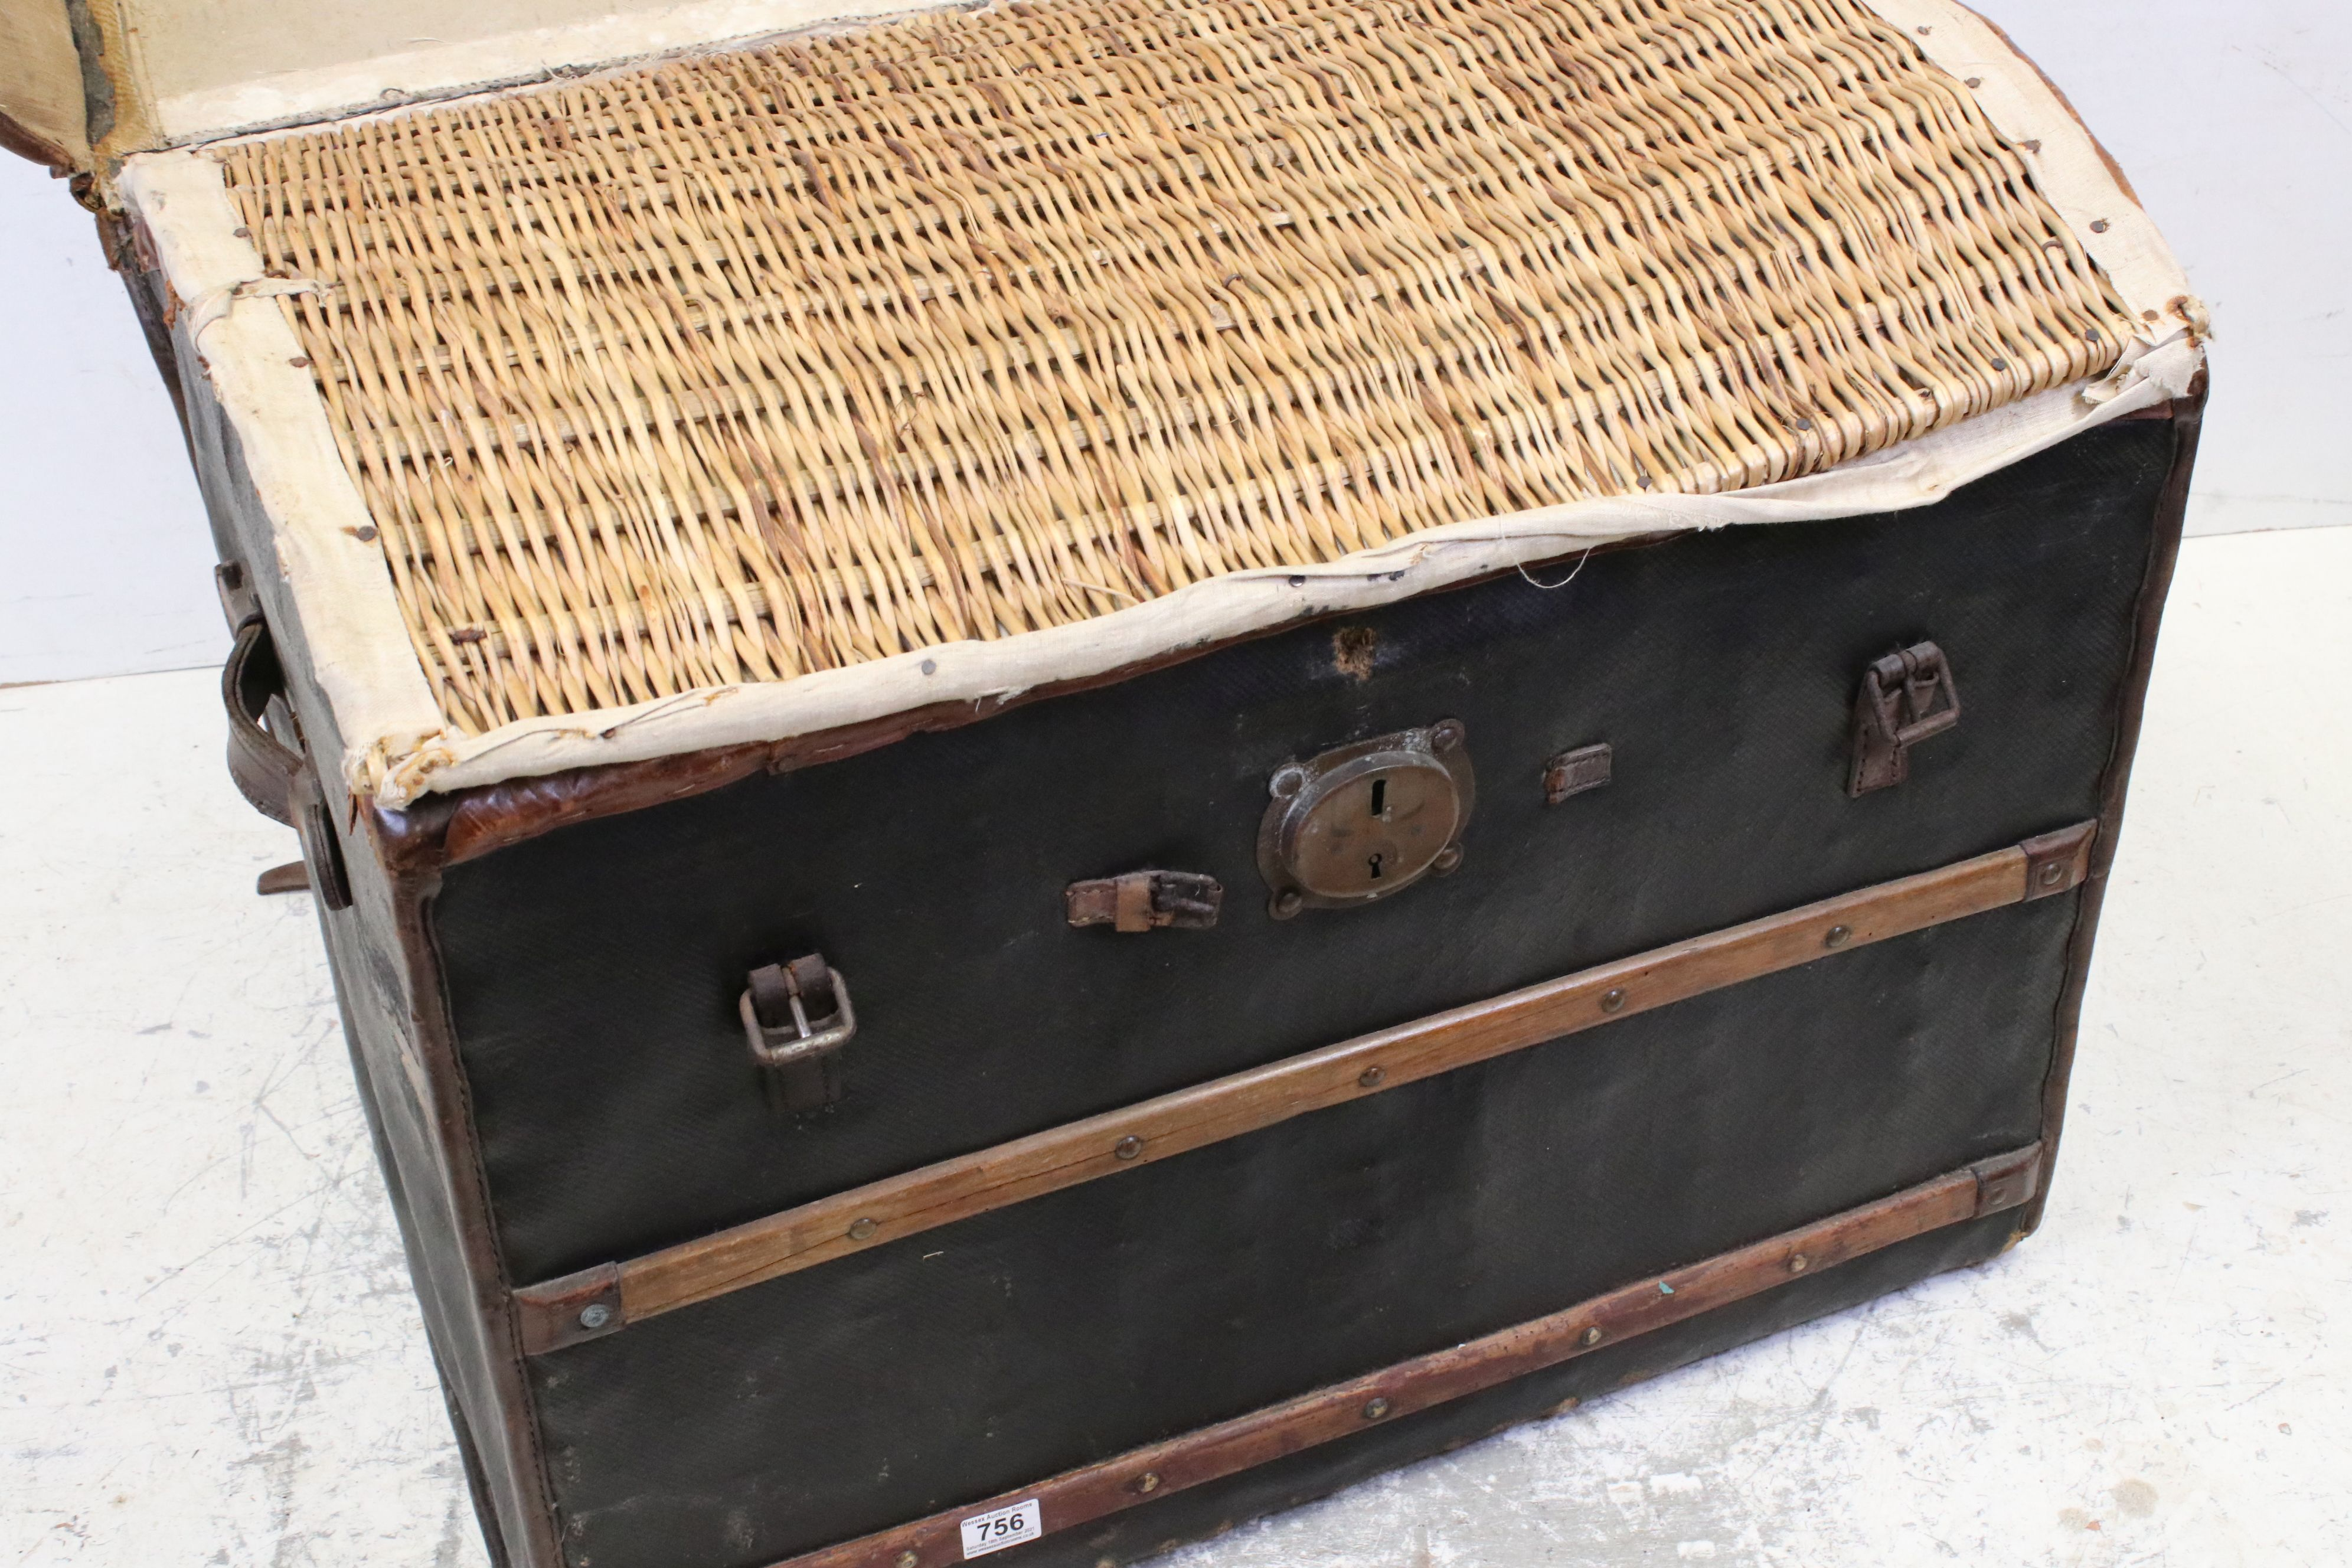 19th century Domed Top Wicker Leather Bound Travelling Trunk with Drop-in Tray, 82cms long x 66cms - Image 2 of 7